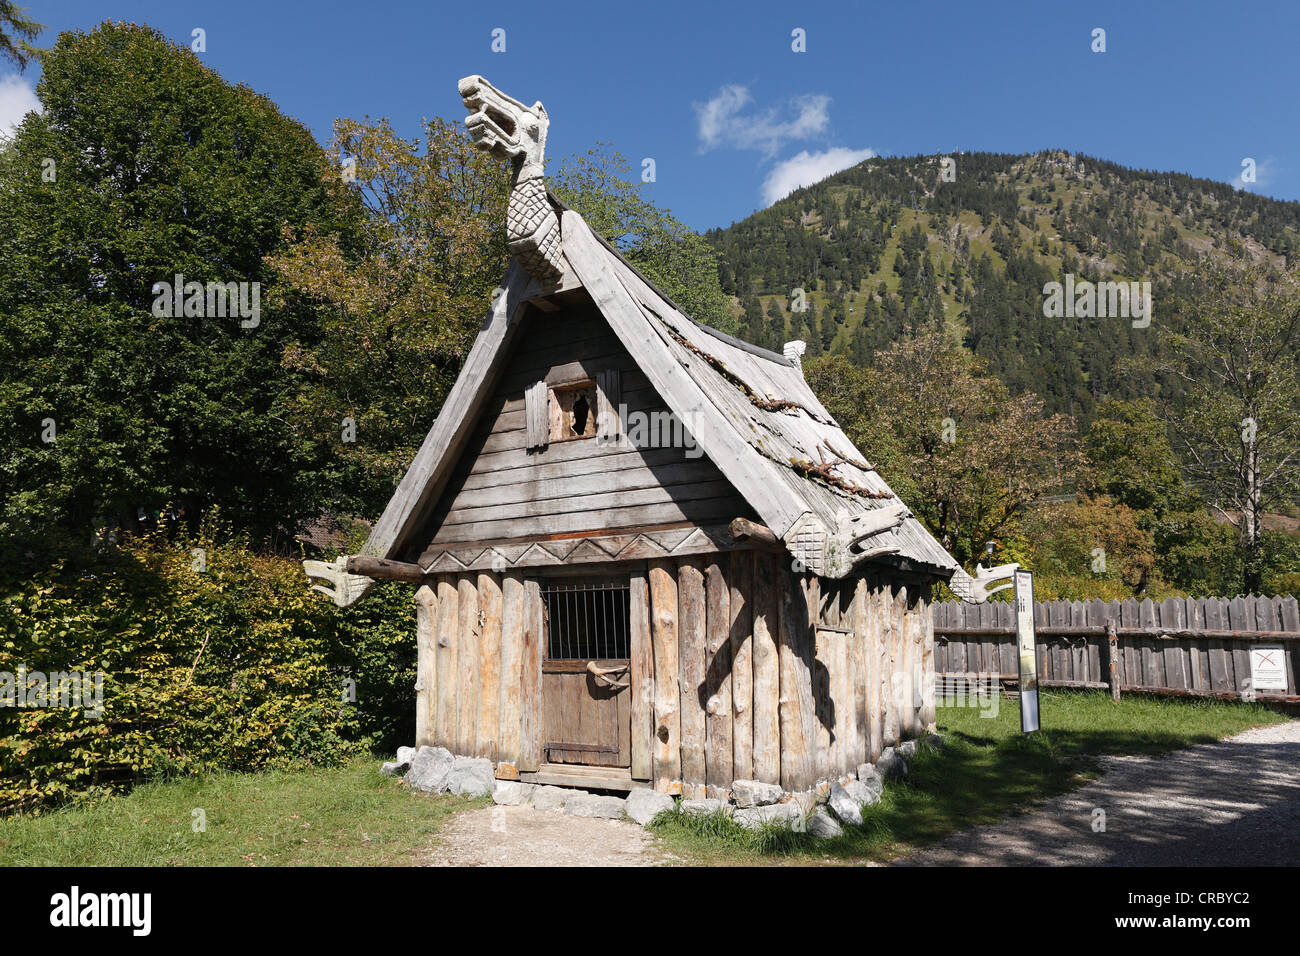 wooden hut near mountain - photo #21